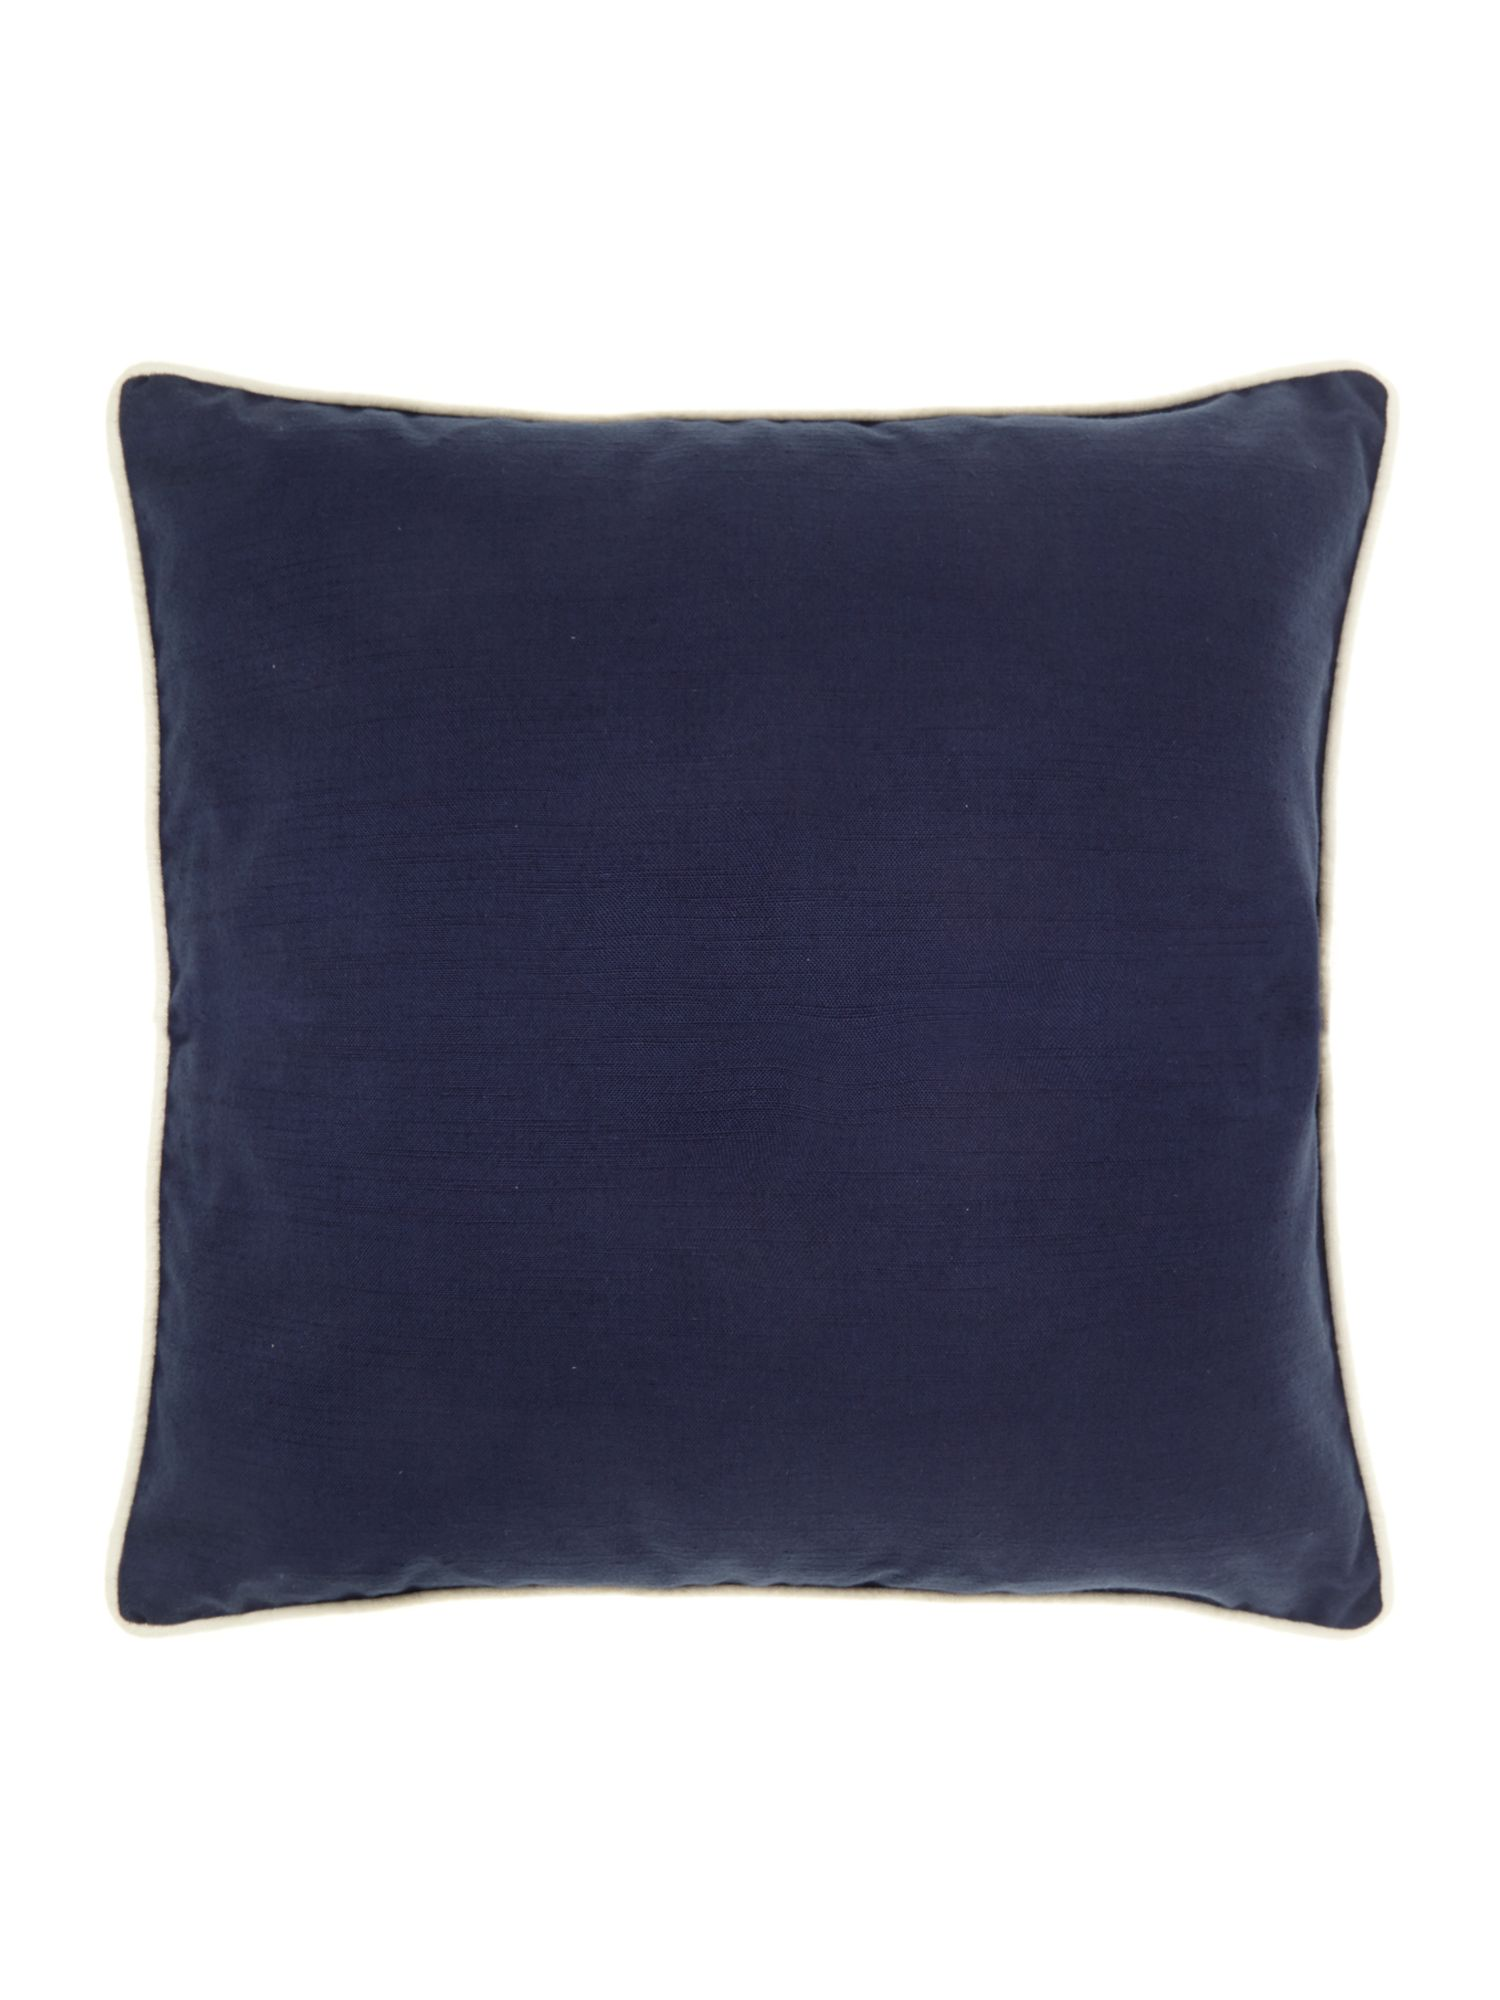 Plain cotton cushion, navy blue